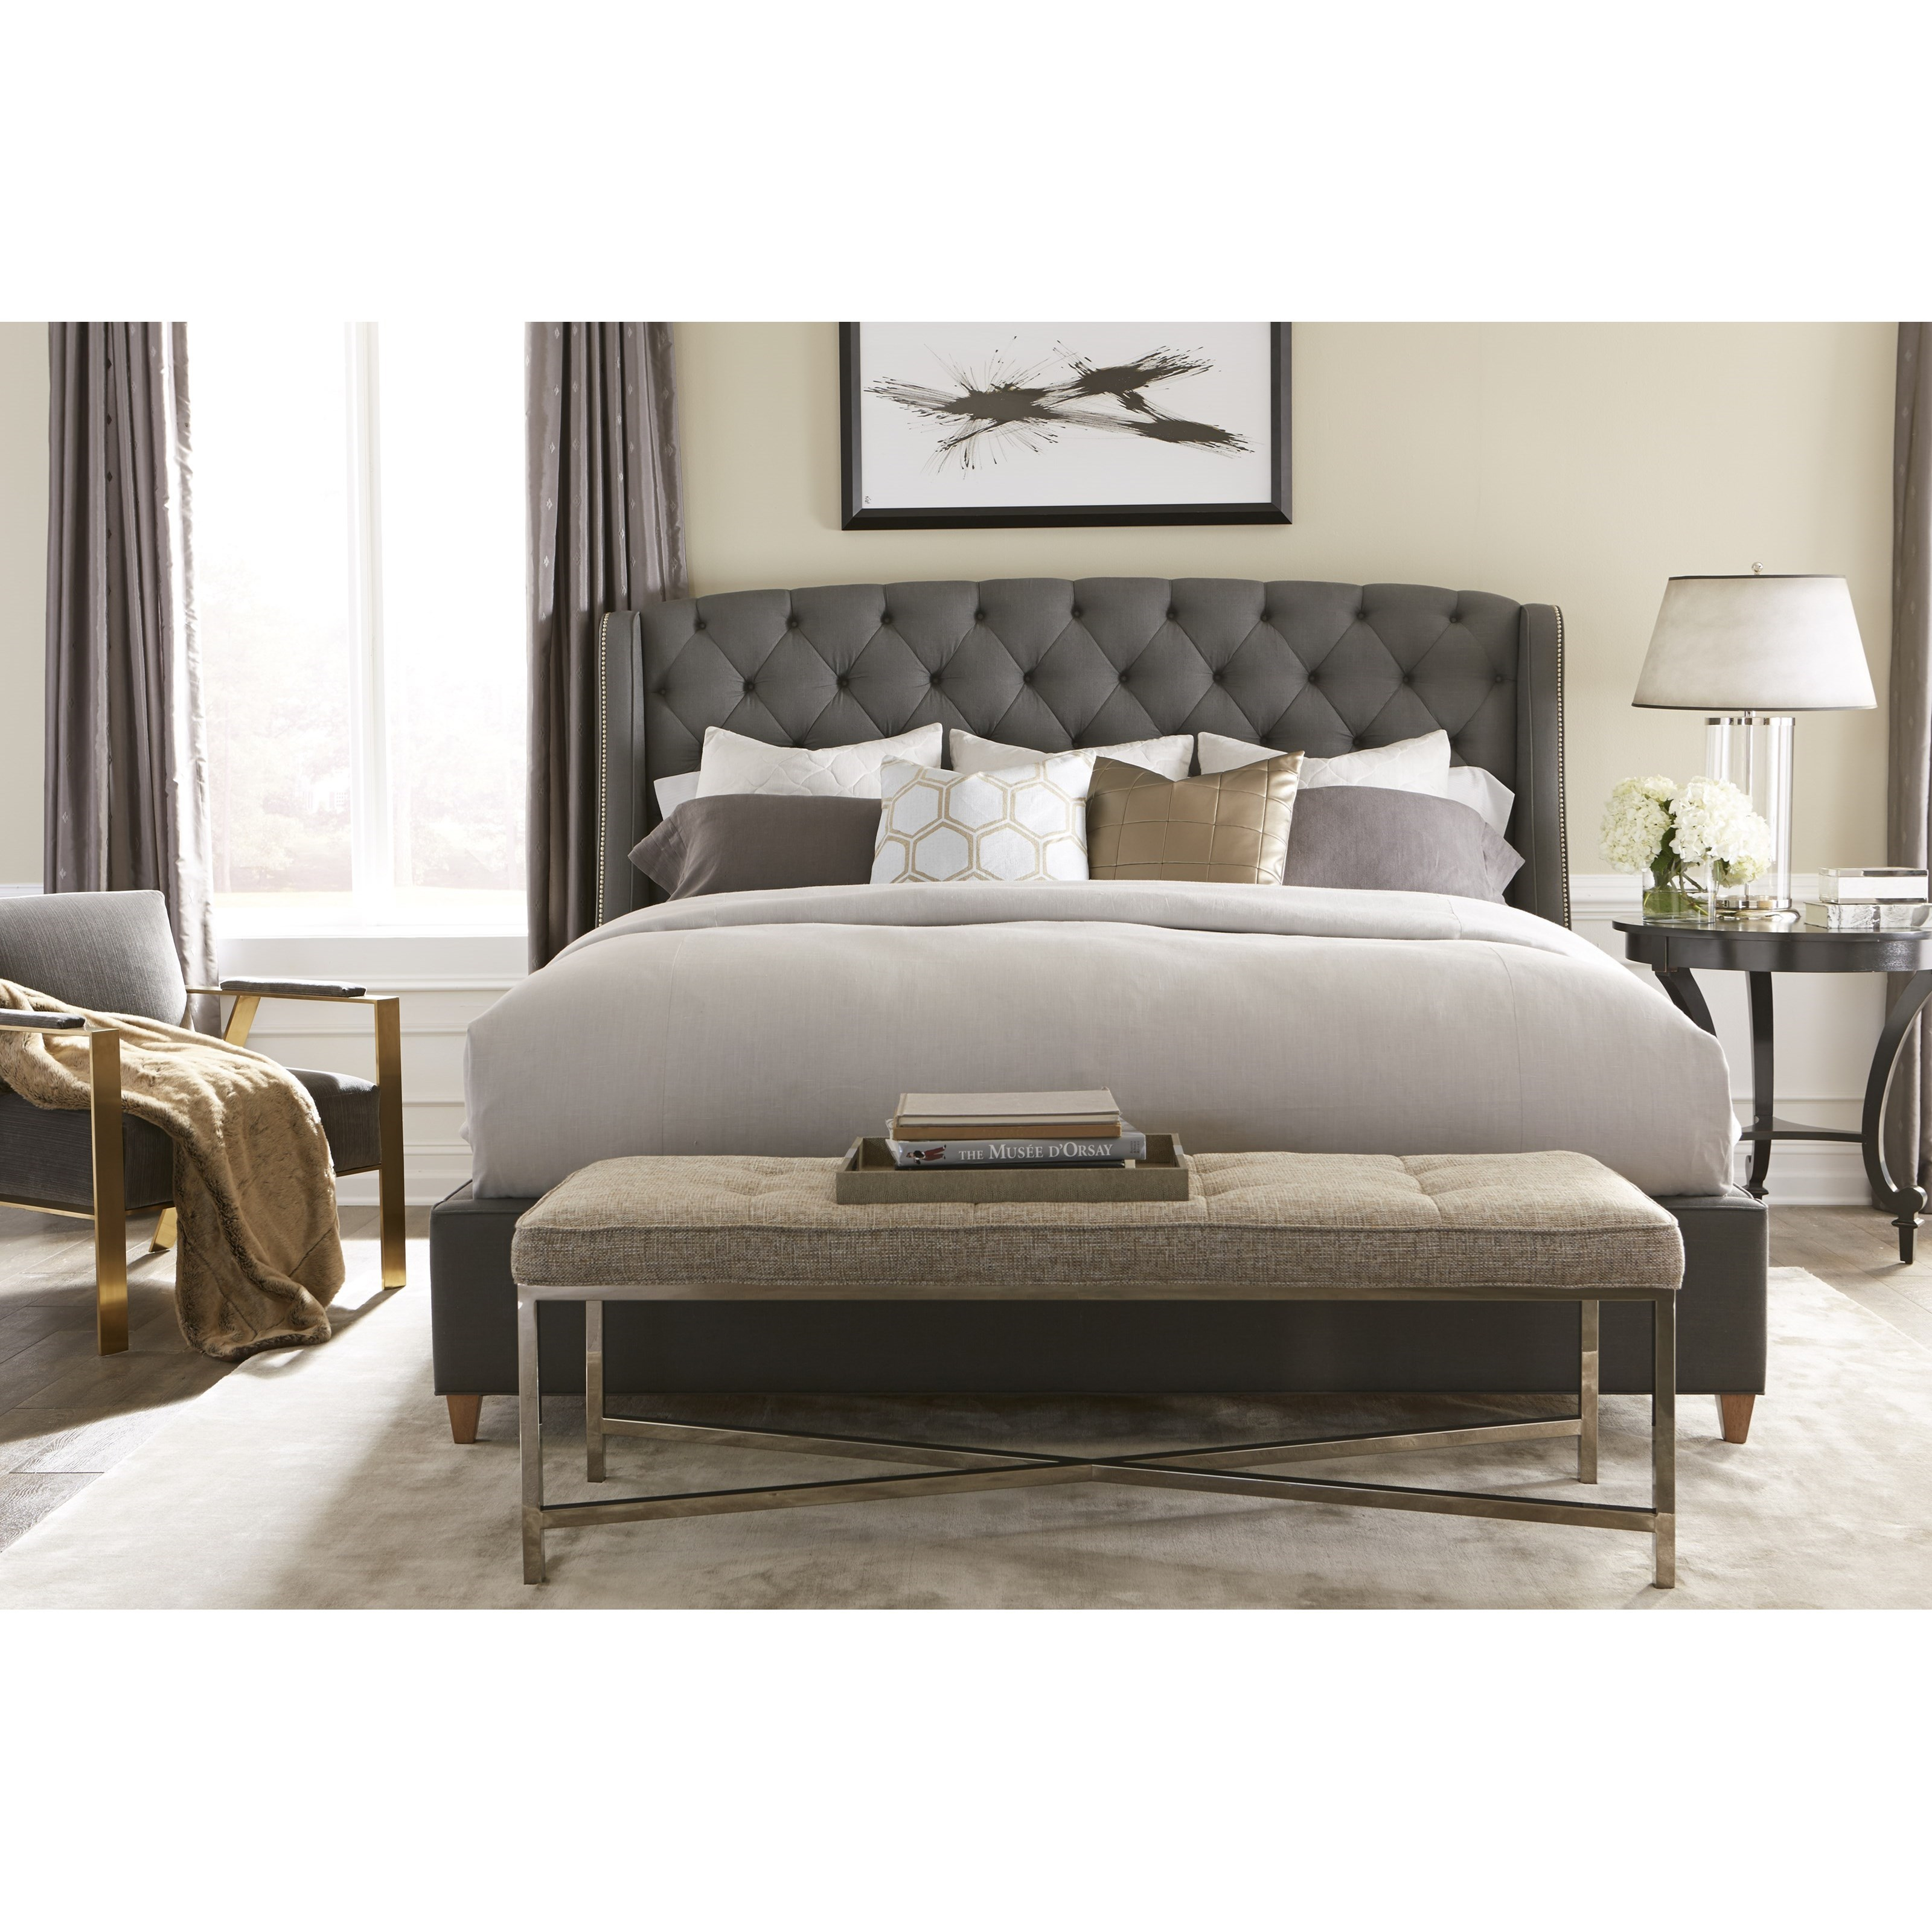 54 Best Images About Complete Bedroom Set Ups On Pinterest: Beds Kirkwood 54'' Queen Upholstered Bed